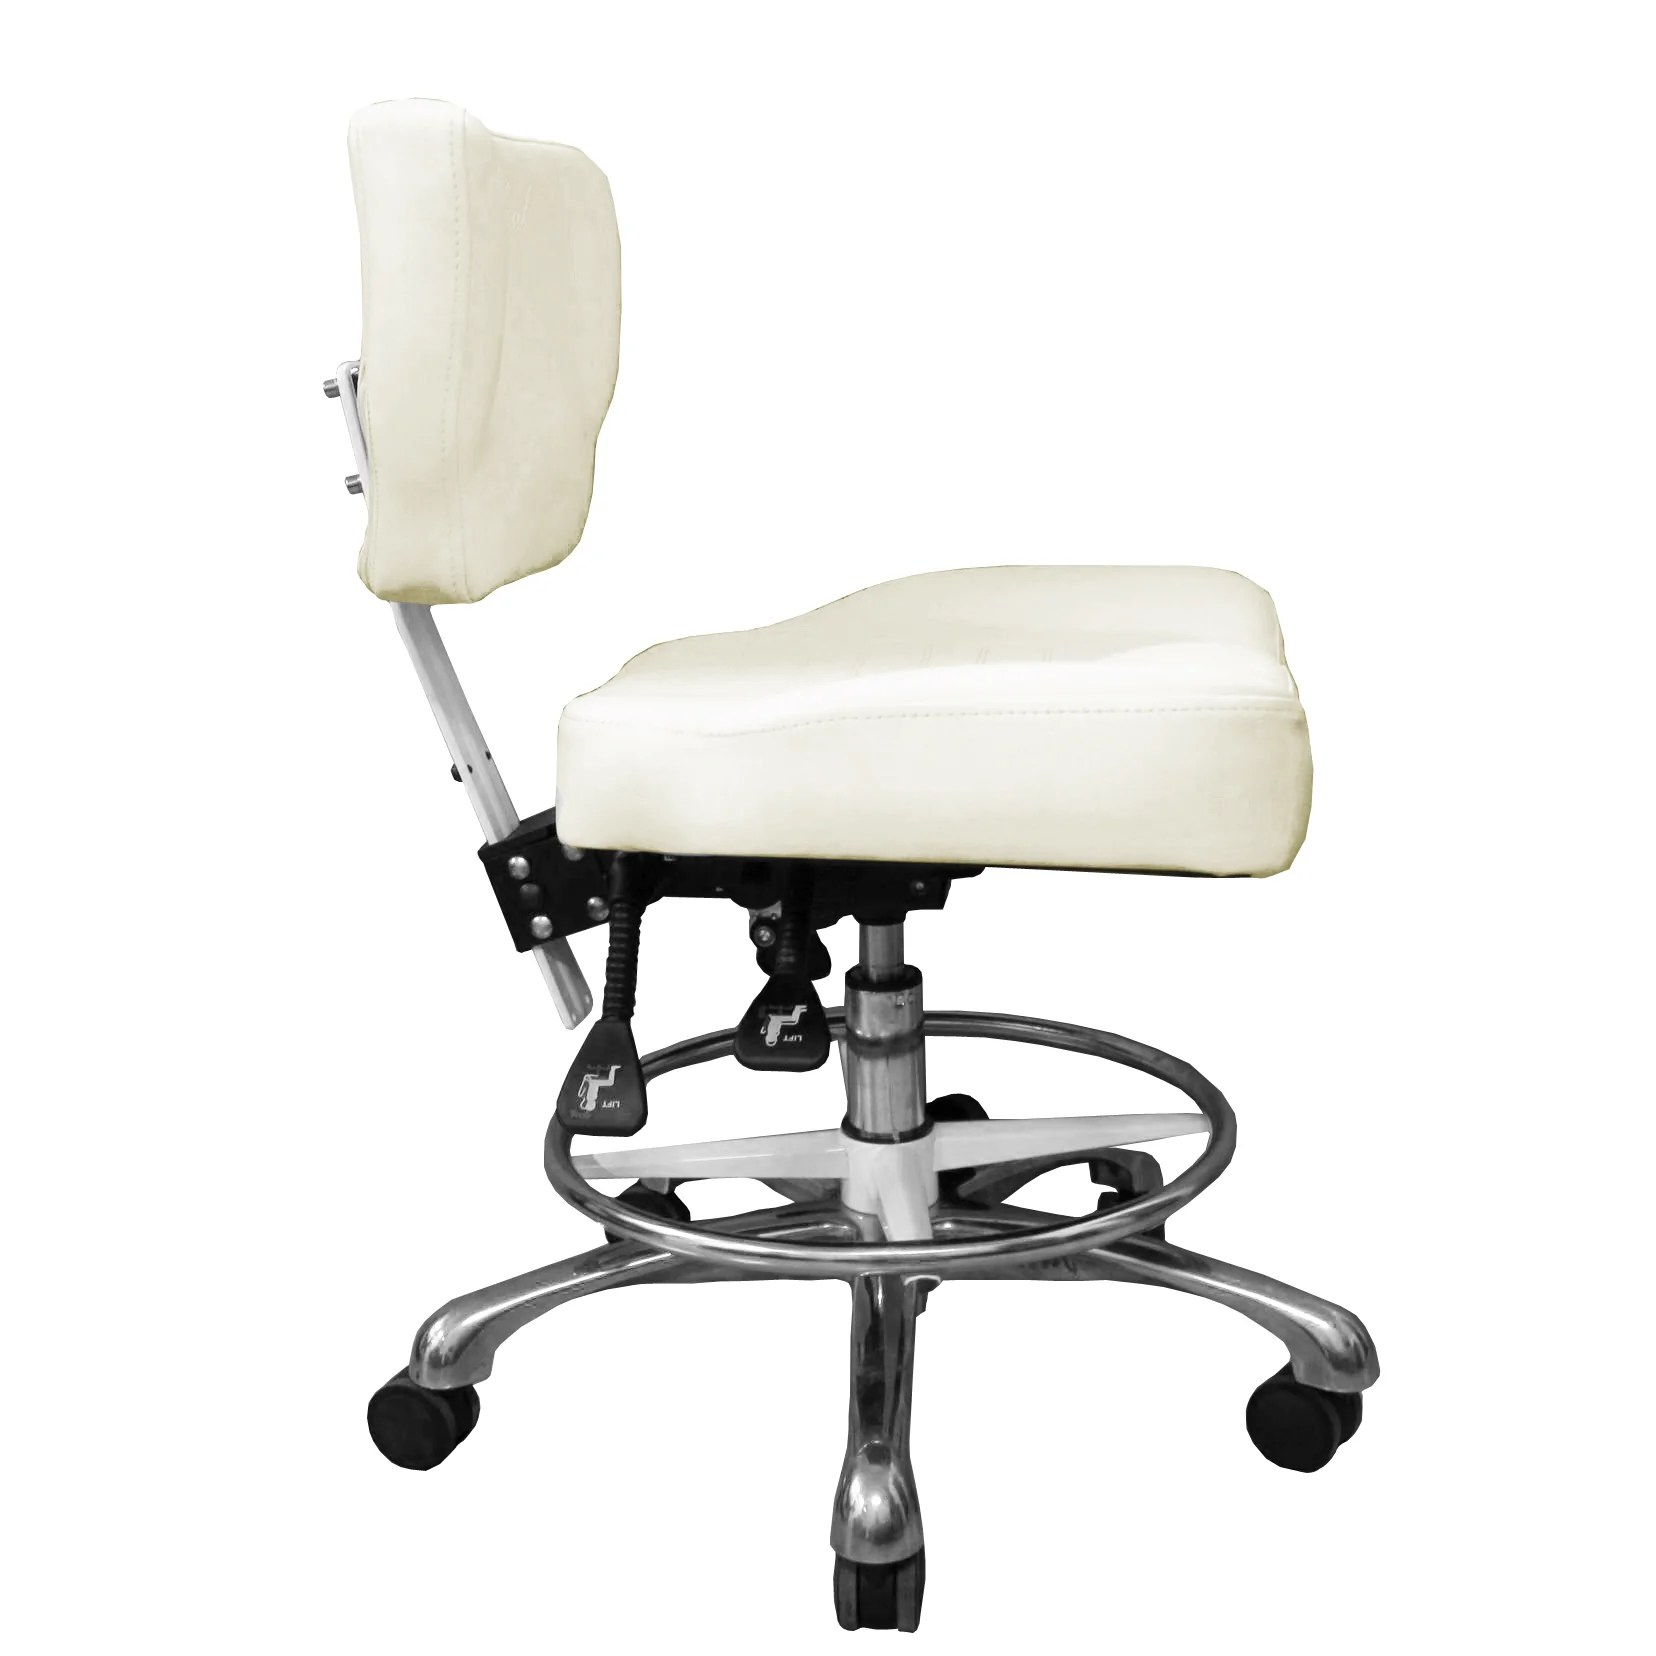 ergonomic esthetician chair safety first booster clinician comfortsoul